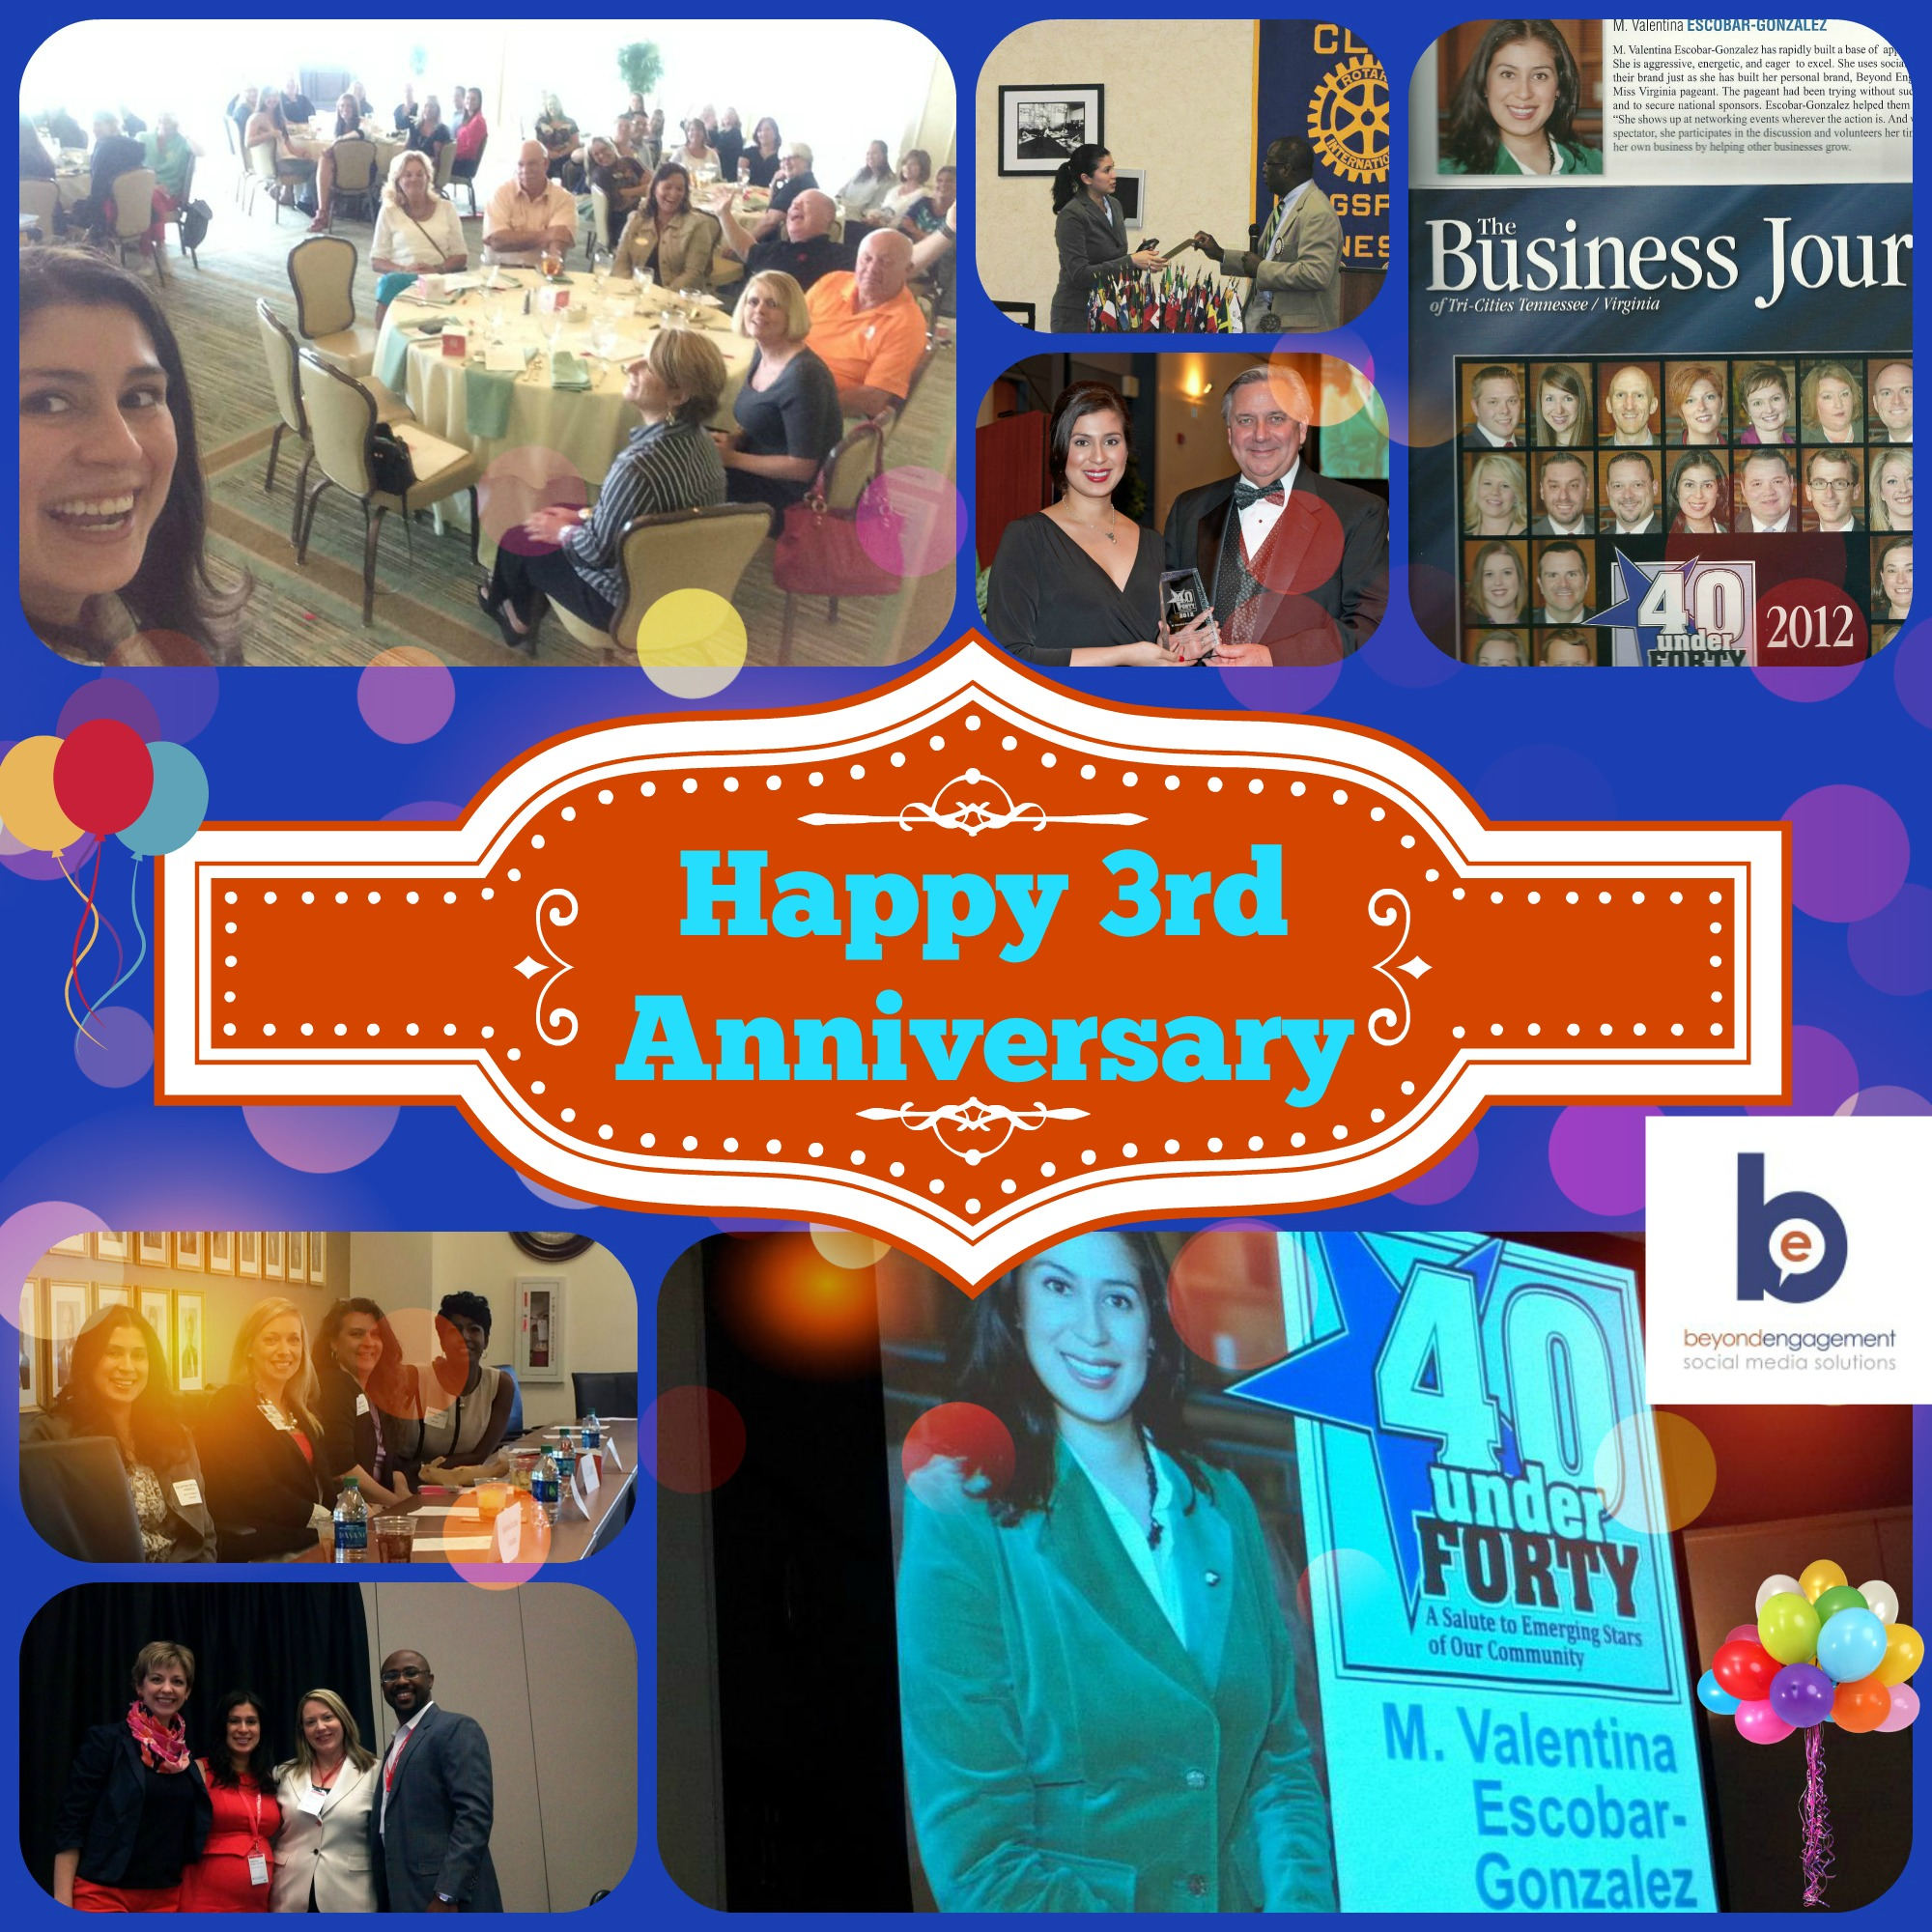 Beyond Engagement - Social Media Solution celebrating three years in Business